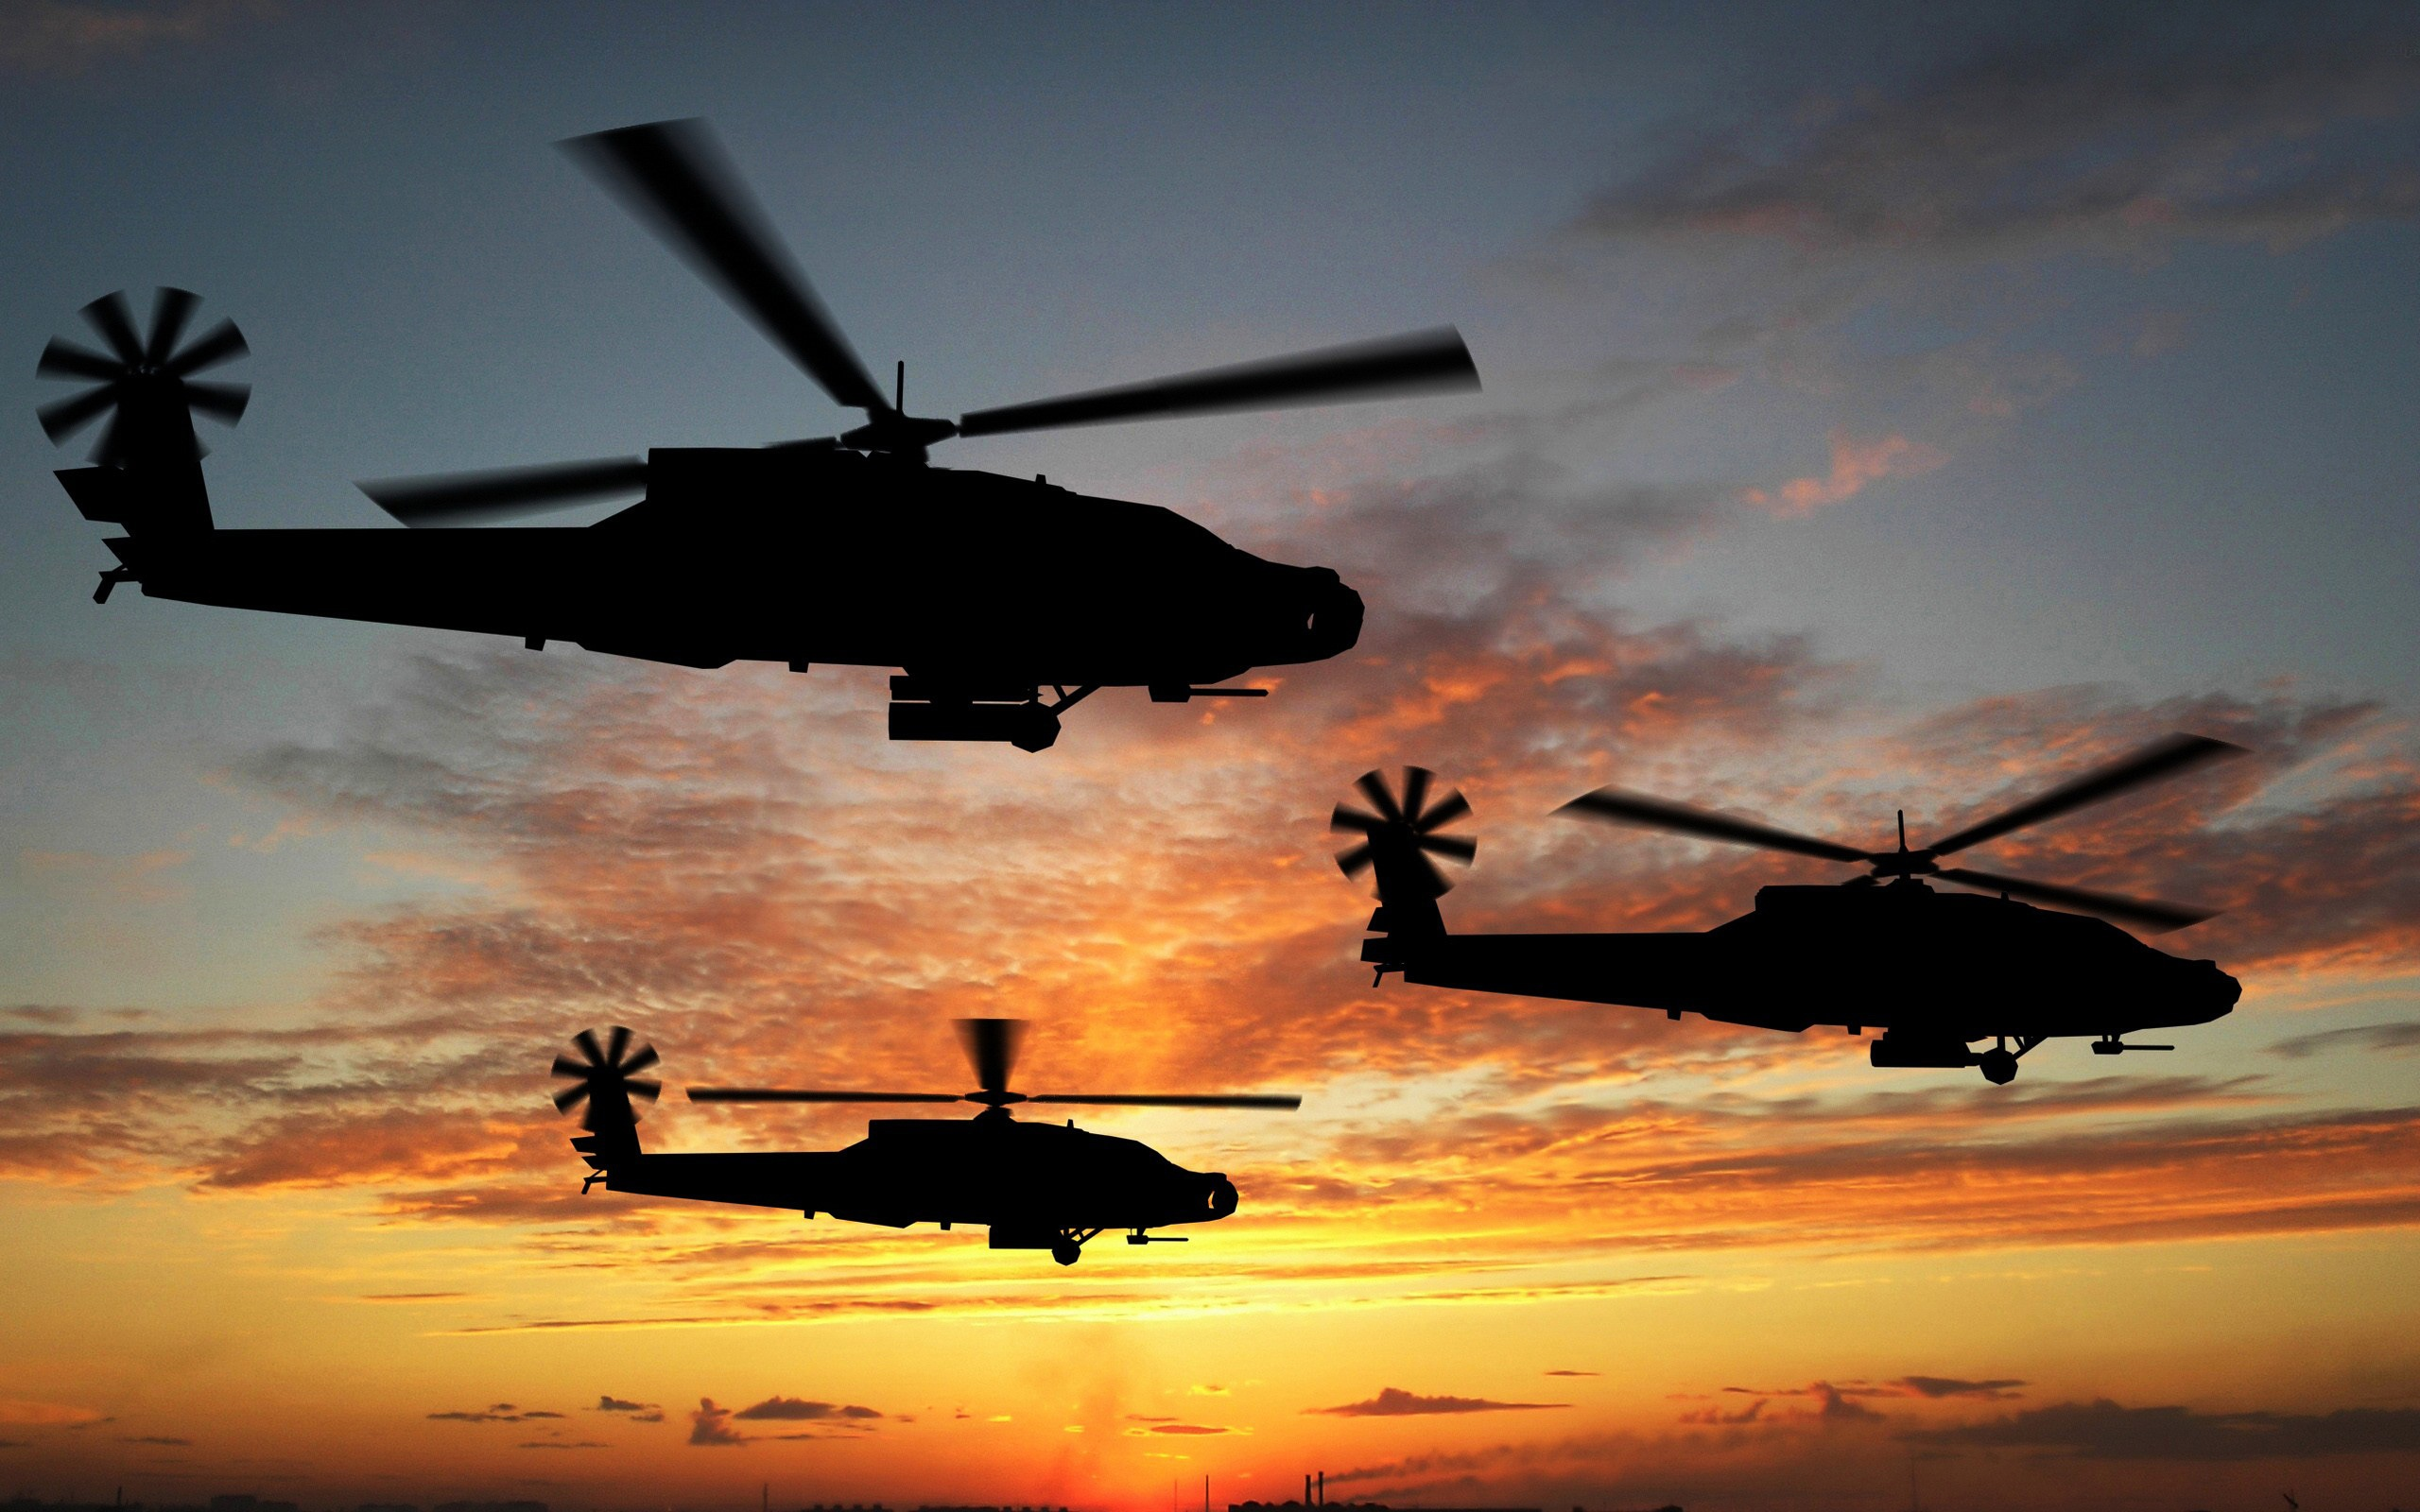 helicopter sunset wallpaper background 8020